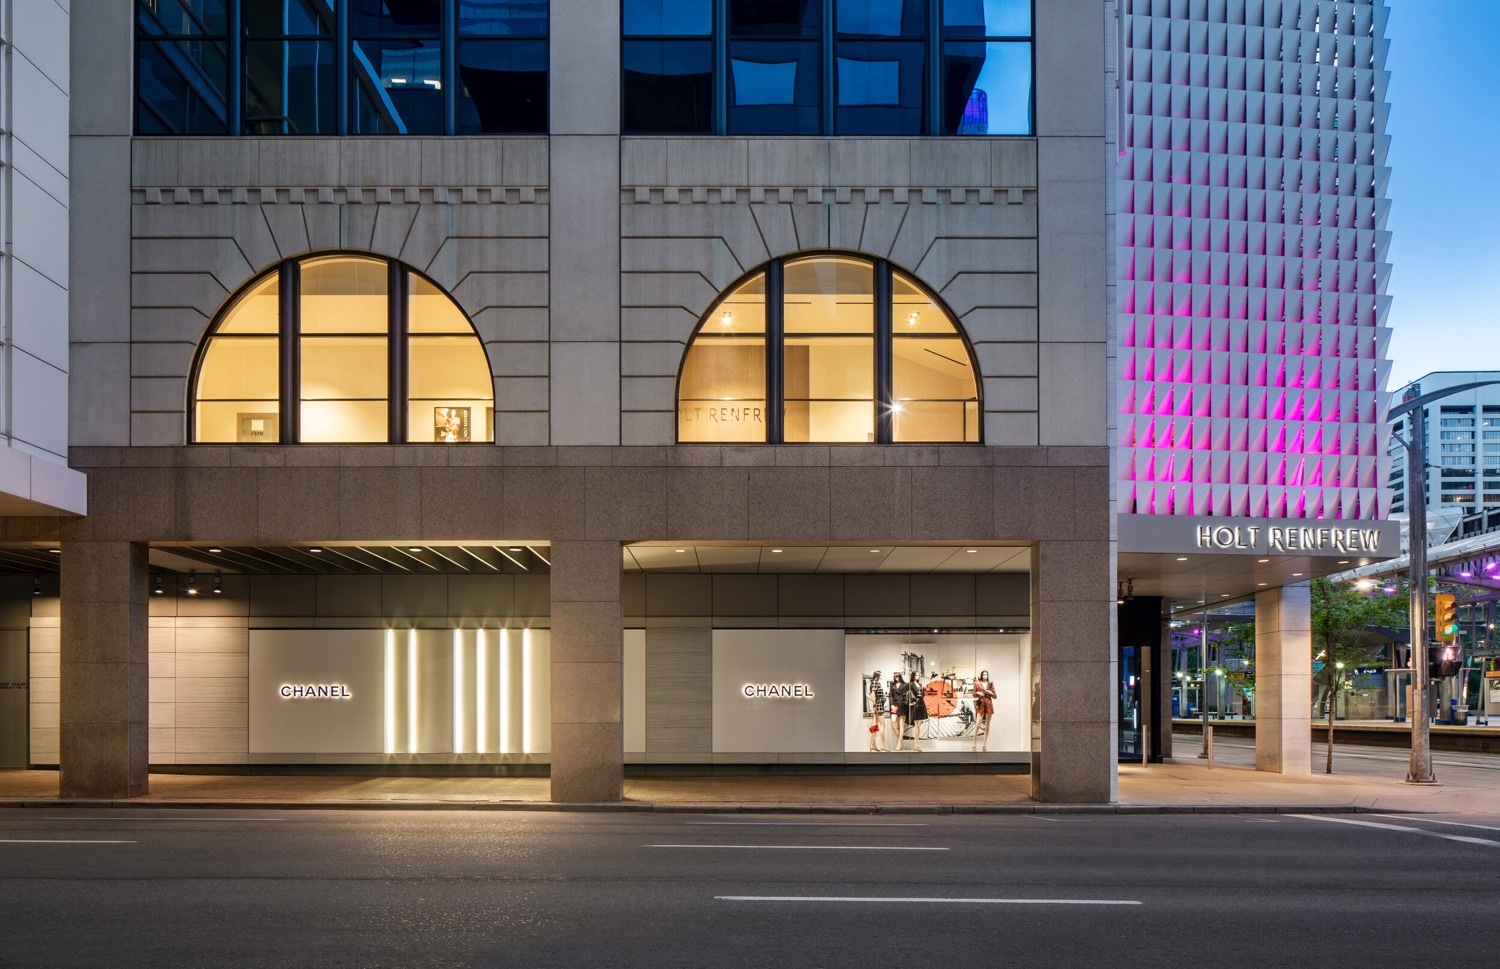 CHANEL opens new store in Calgary, Canada